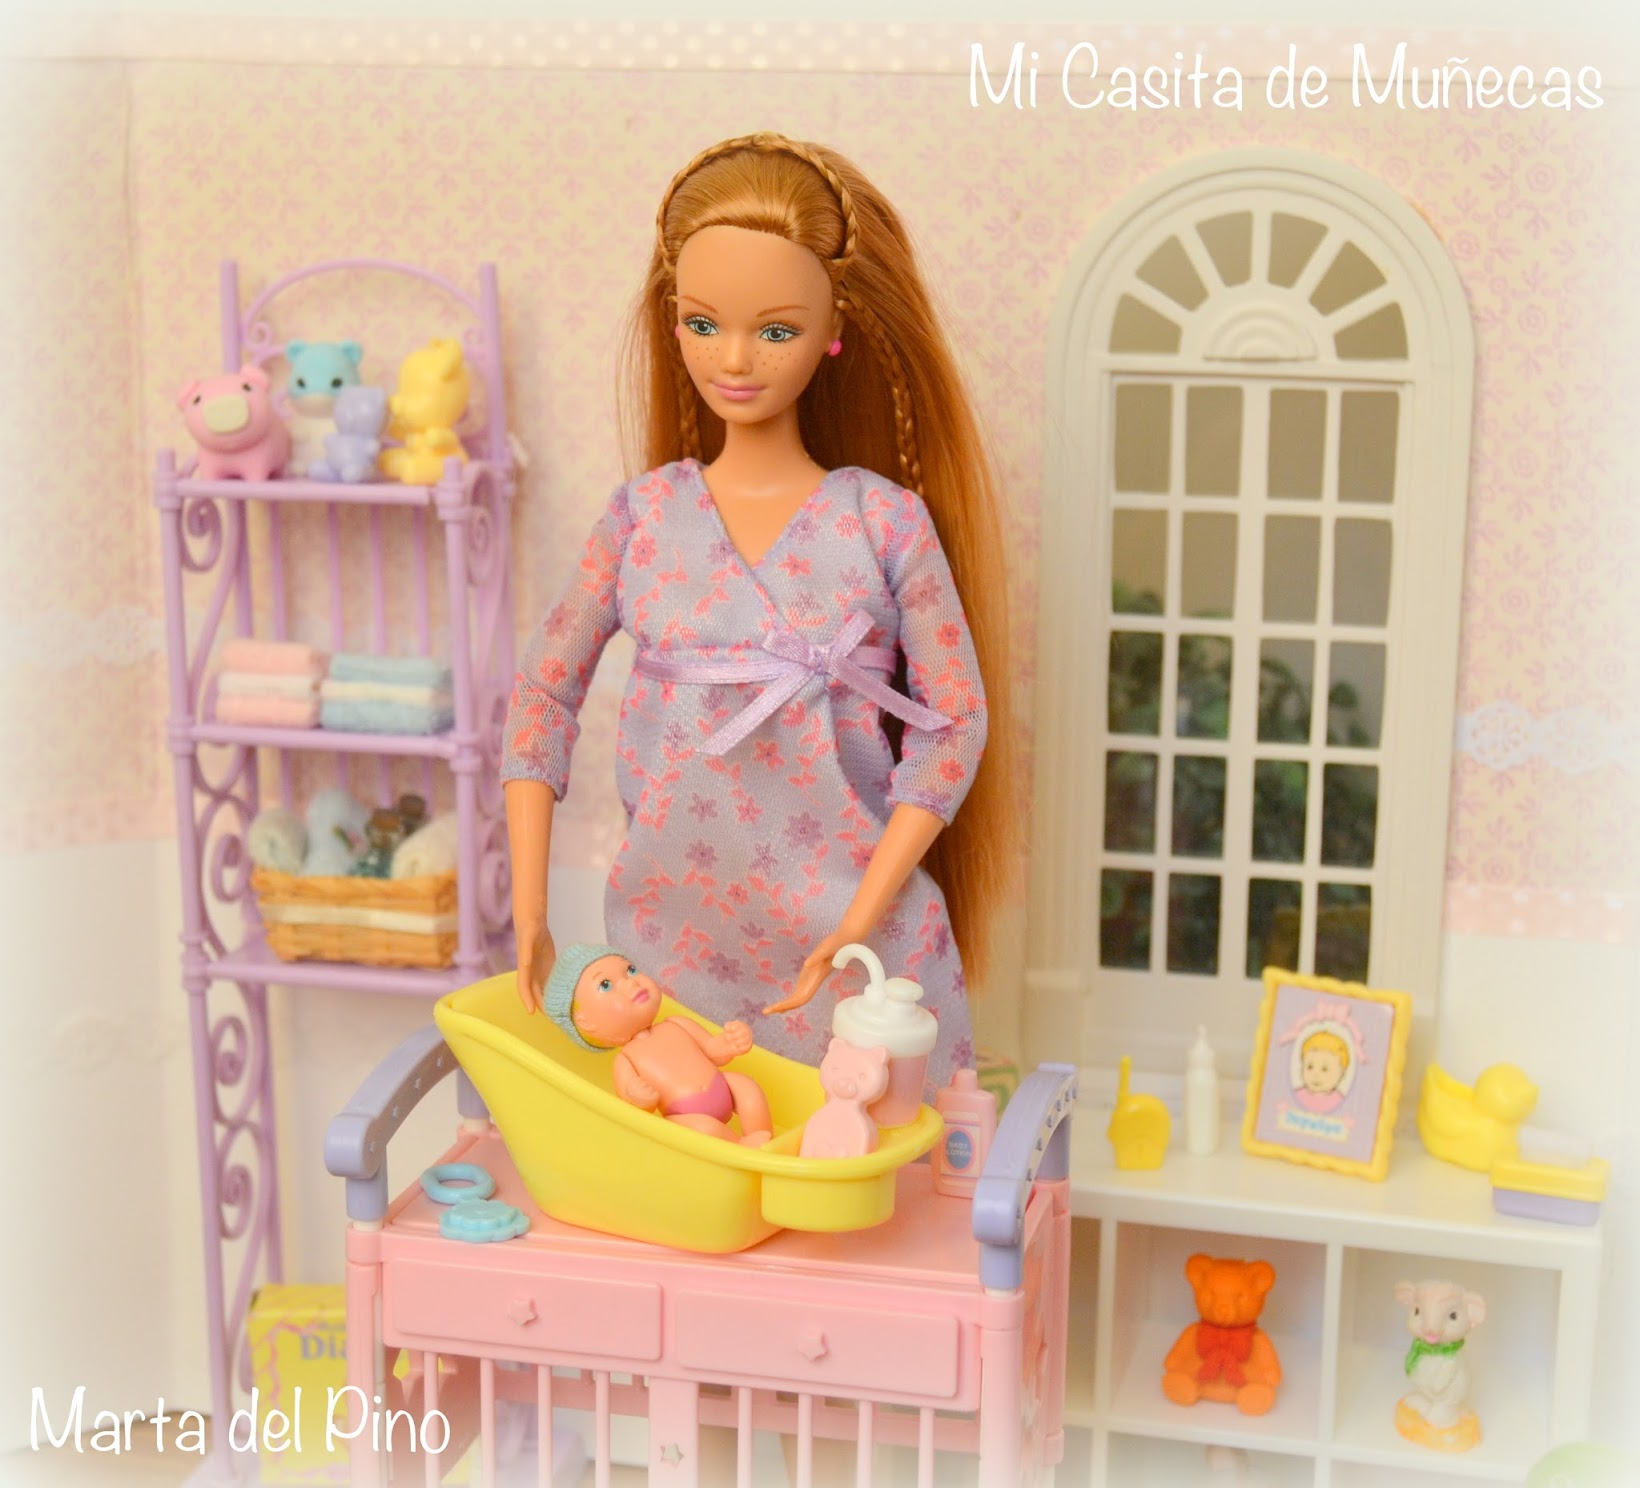 Barbie Midge Happy Family, embarazada, pregnant, bebe, Marta del Pino, Mi Casita de Muñecas